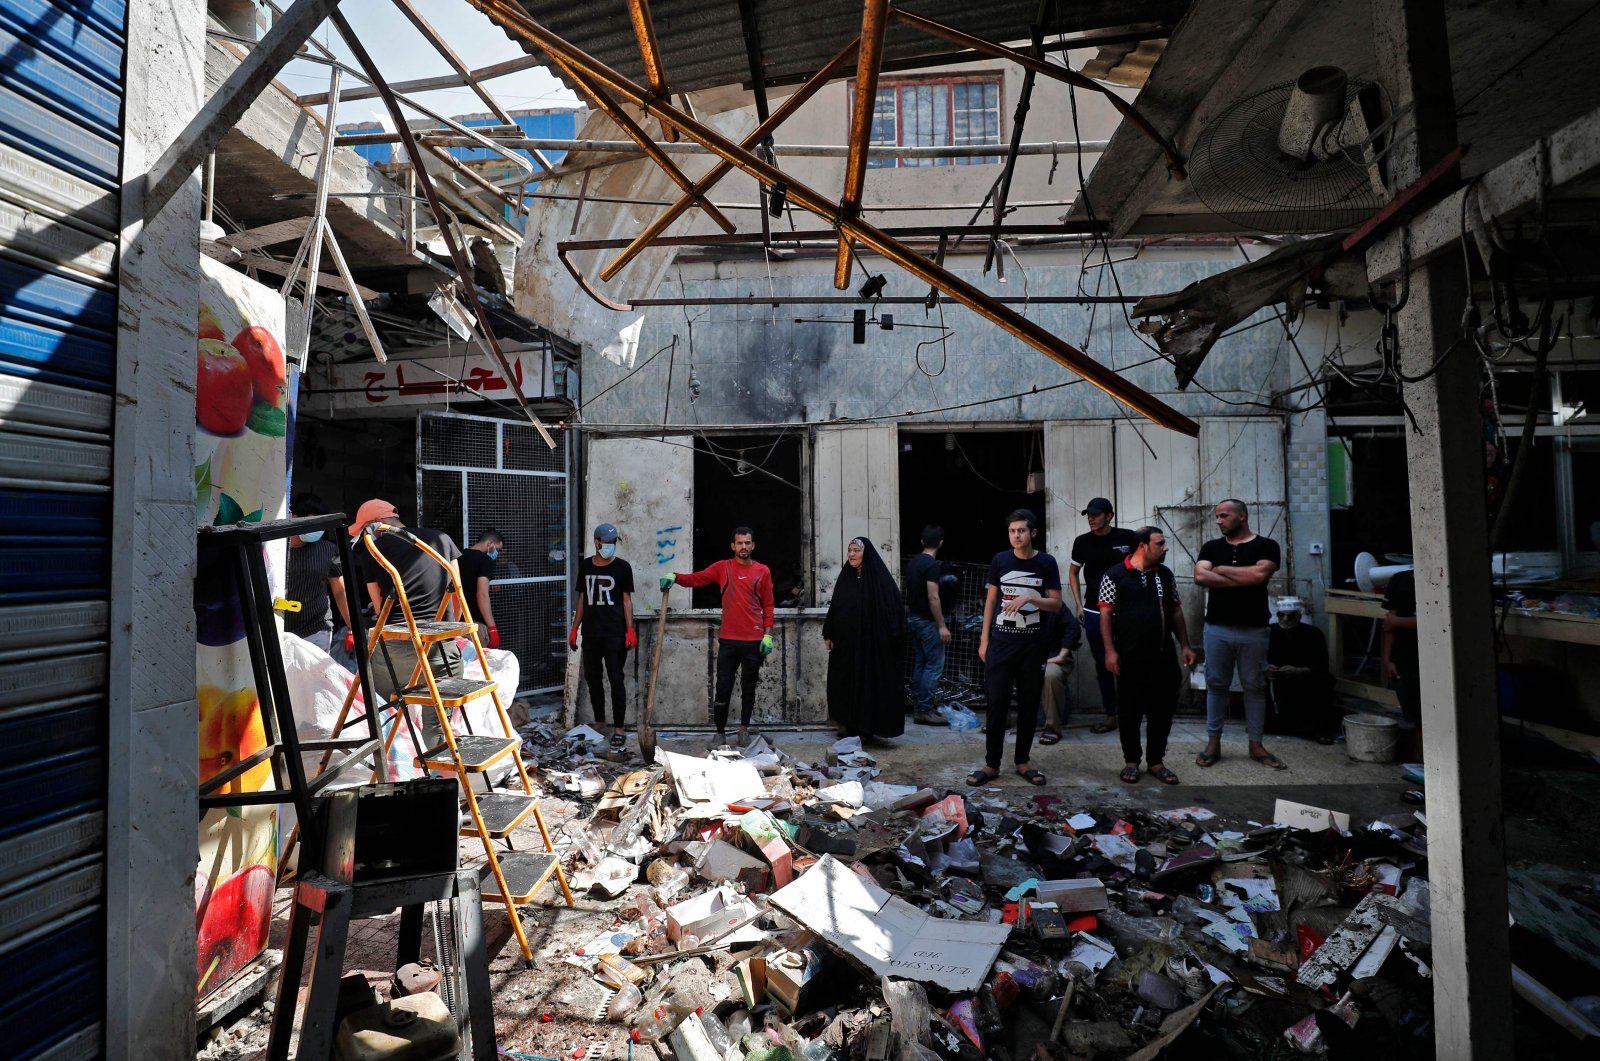 Iraqis inspect the site of the explosion a day earlier in a popular market in the Sadr City neighborhood, near capital Baghdad, Iraq, July 20, 2021. (AFP Photo)